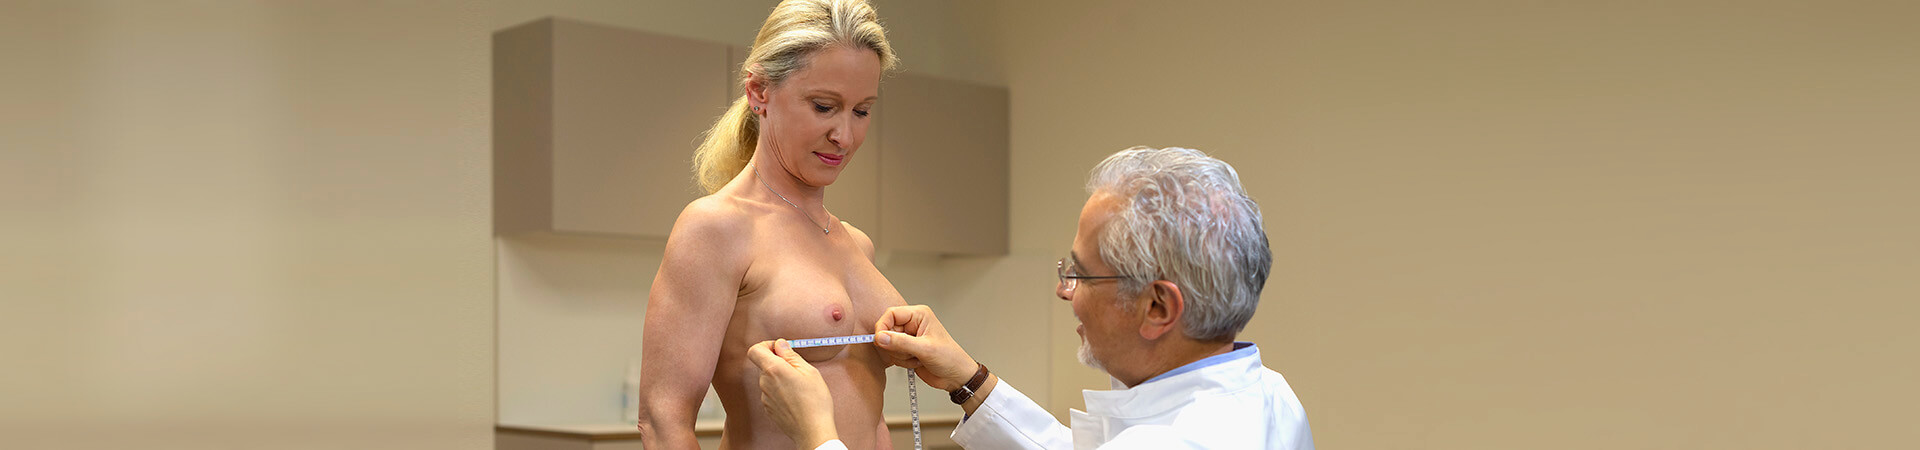 Bruststraffung in Frankfurt bei Dr. Deb, beauteous breast